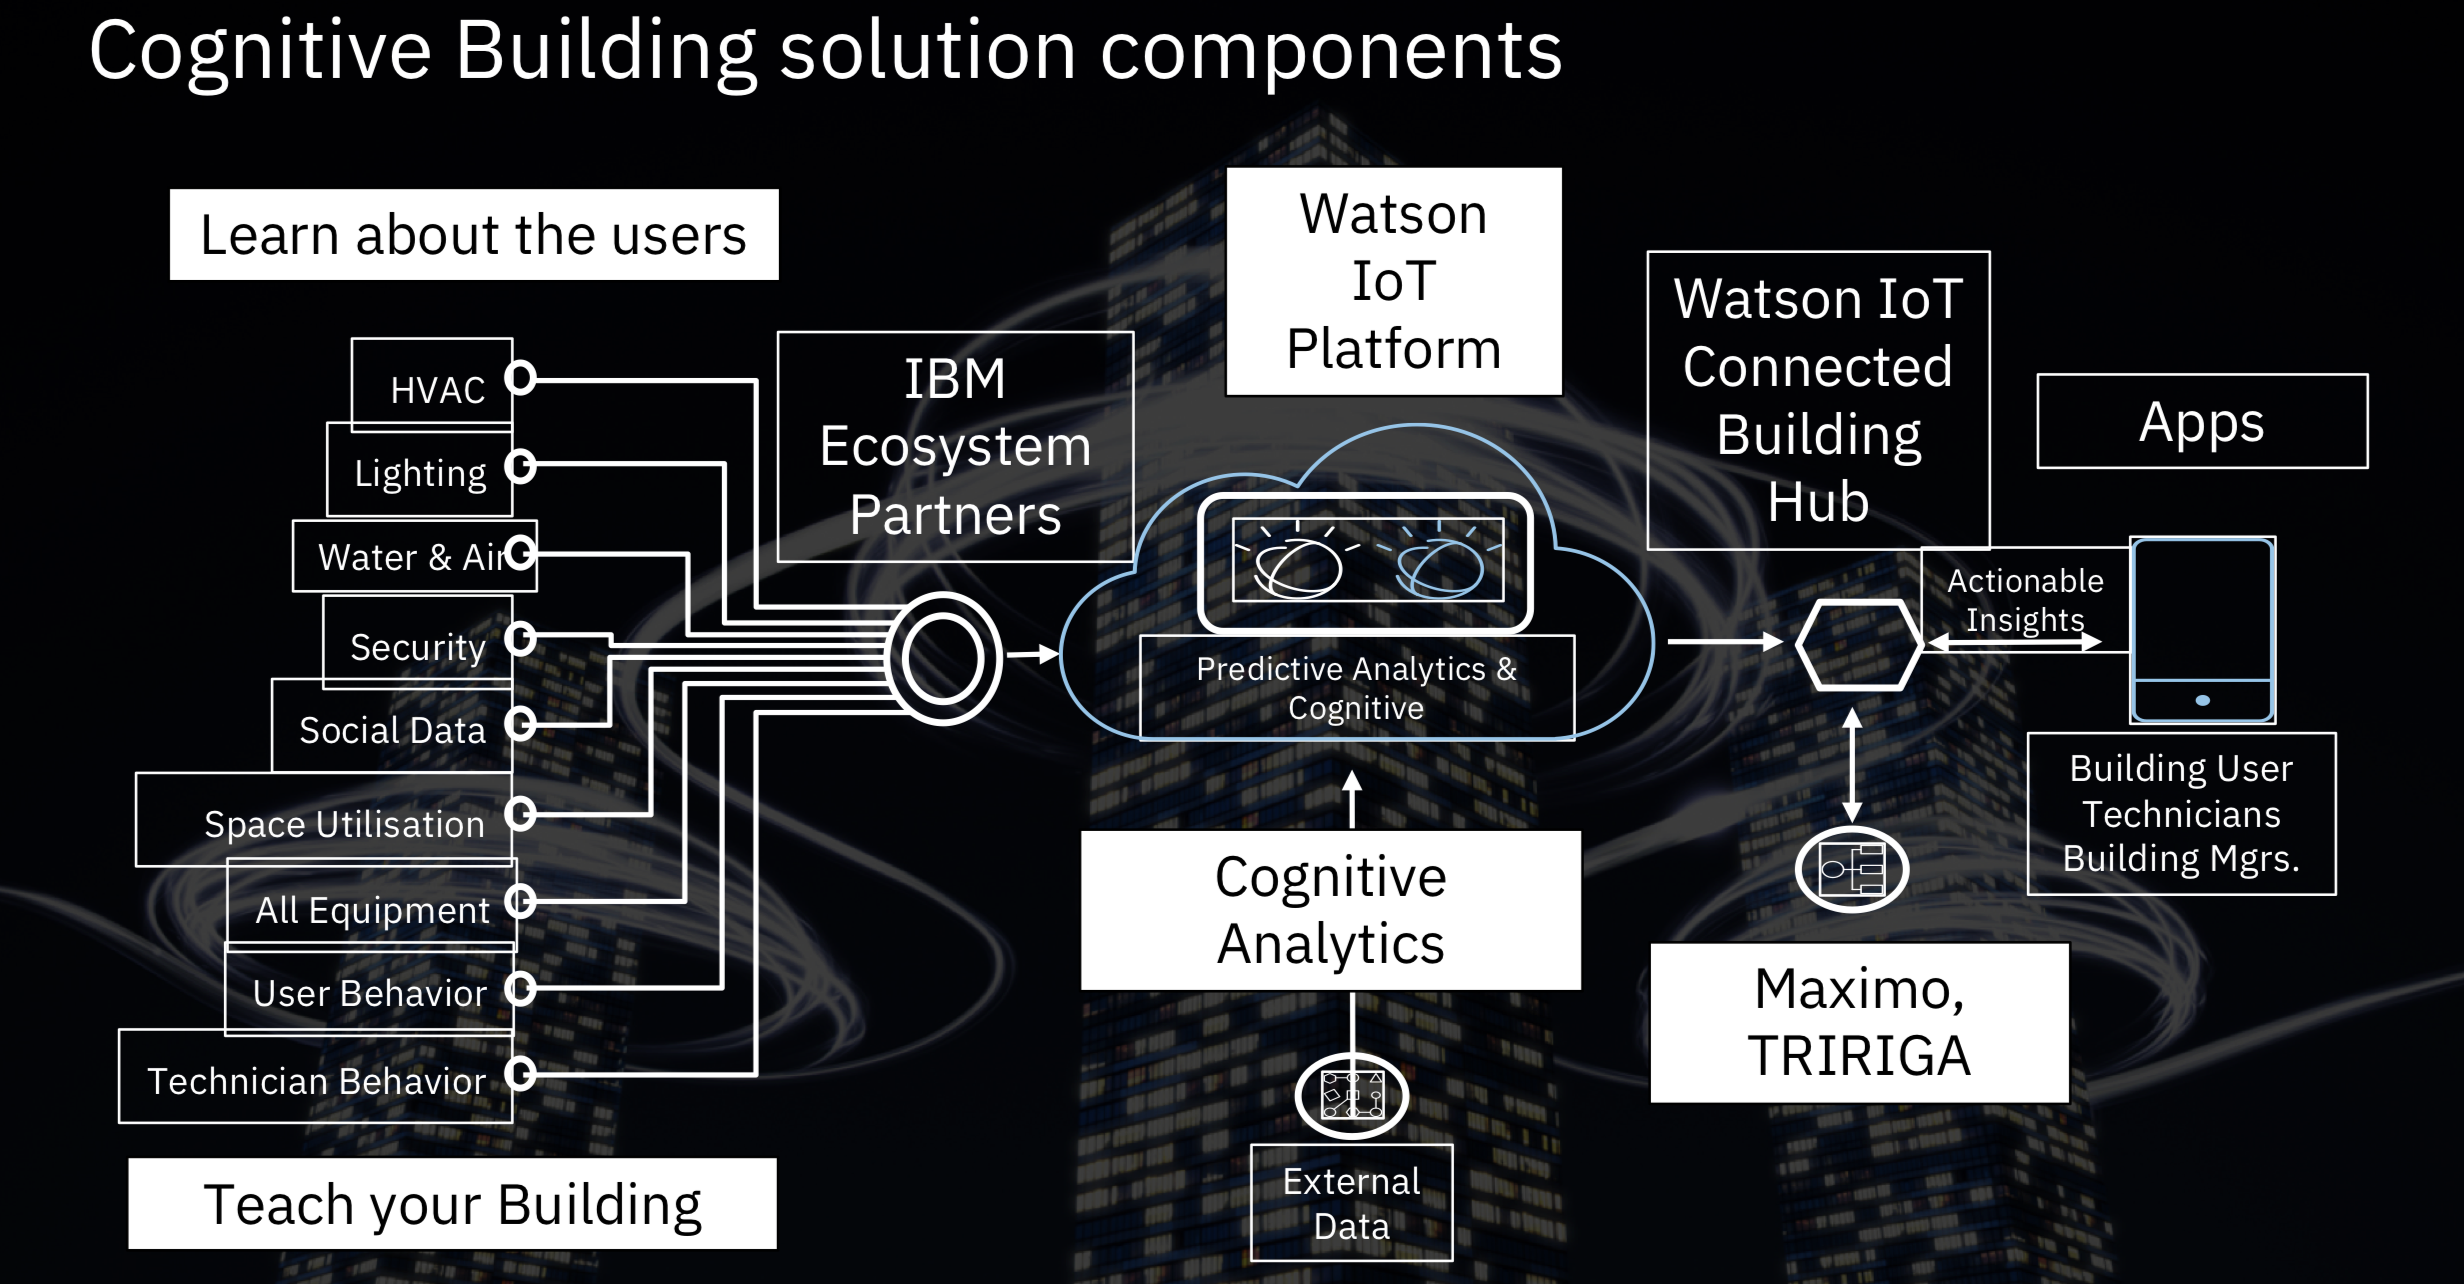 cognitive building solution components